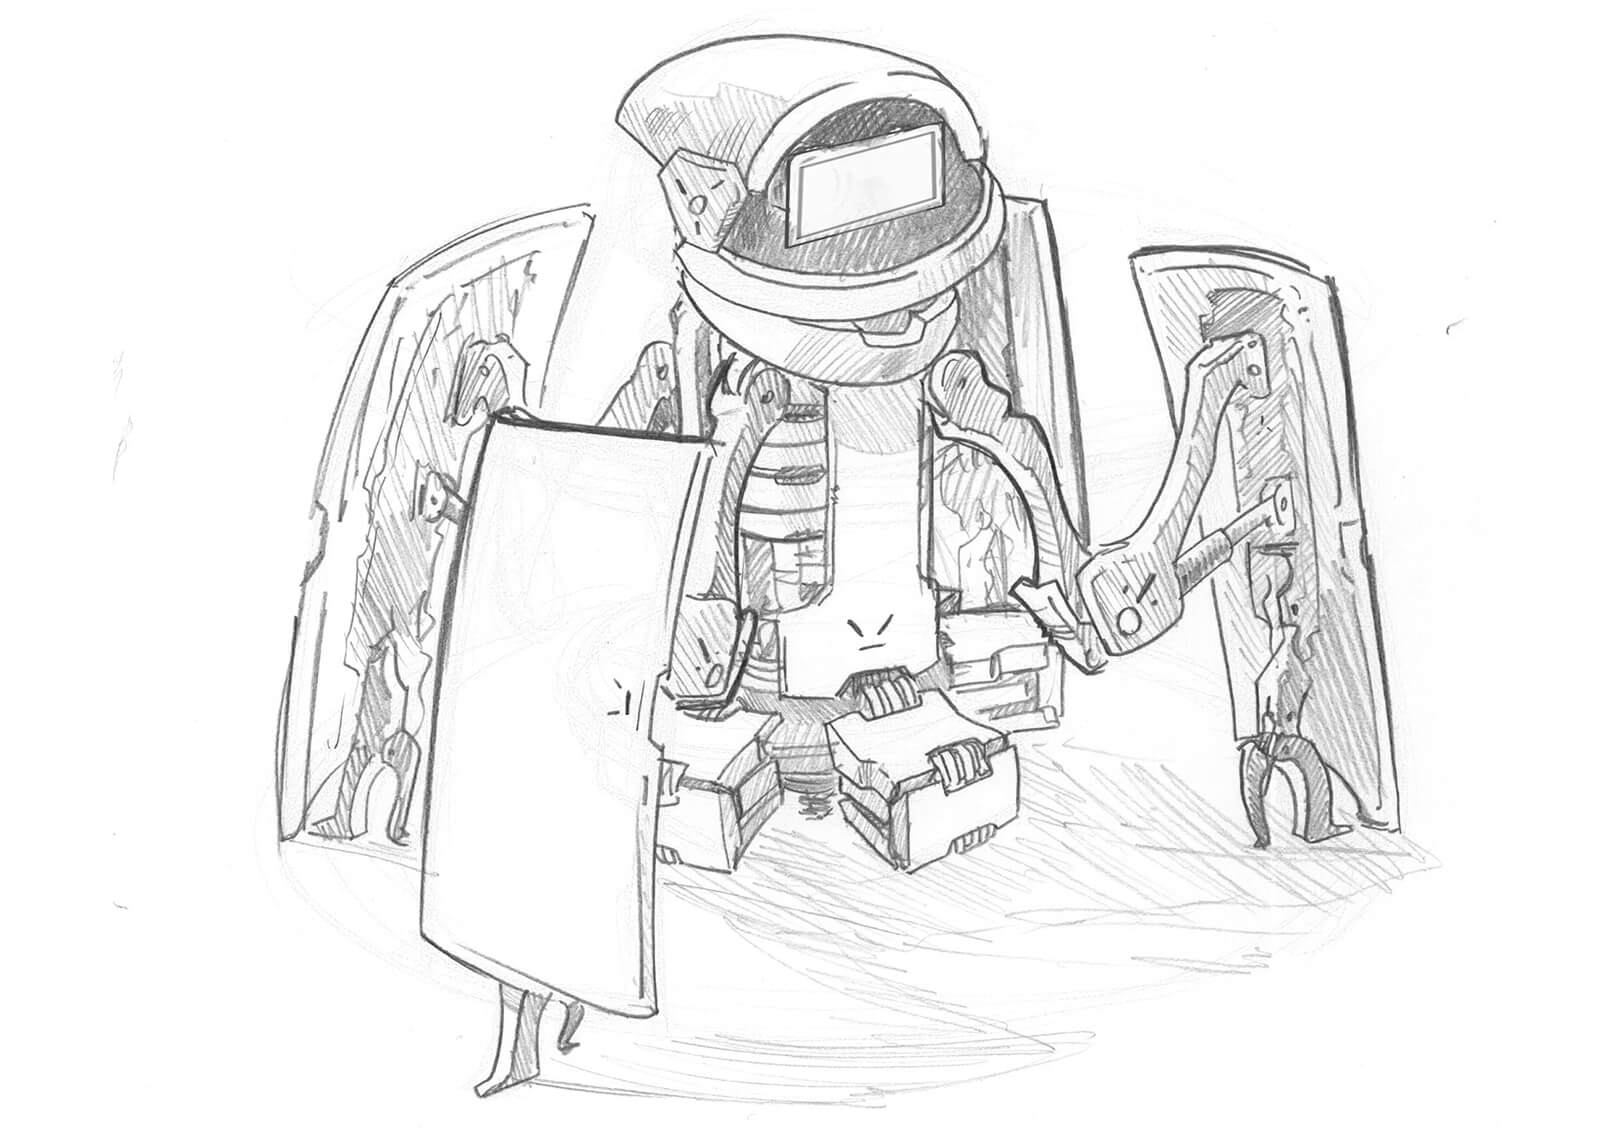 Black-and-white sketch of a short robot-like device with splayed-out panels revealing machinery inside